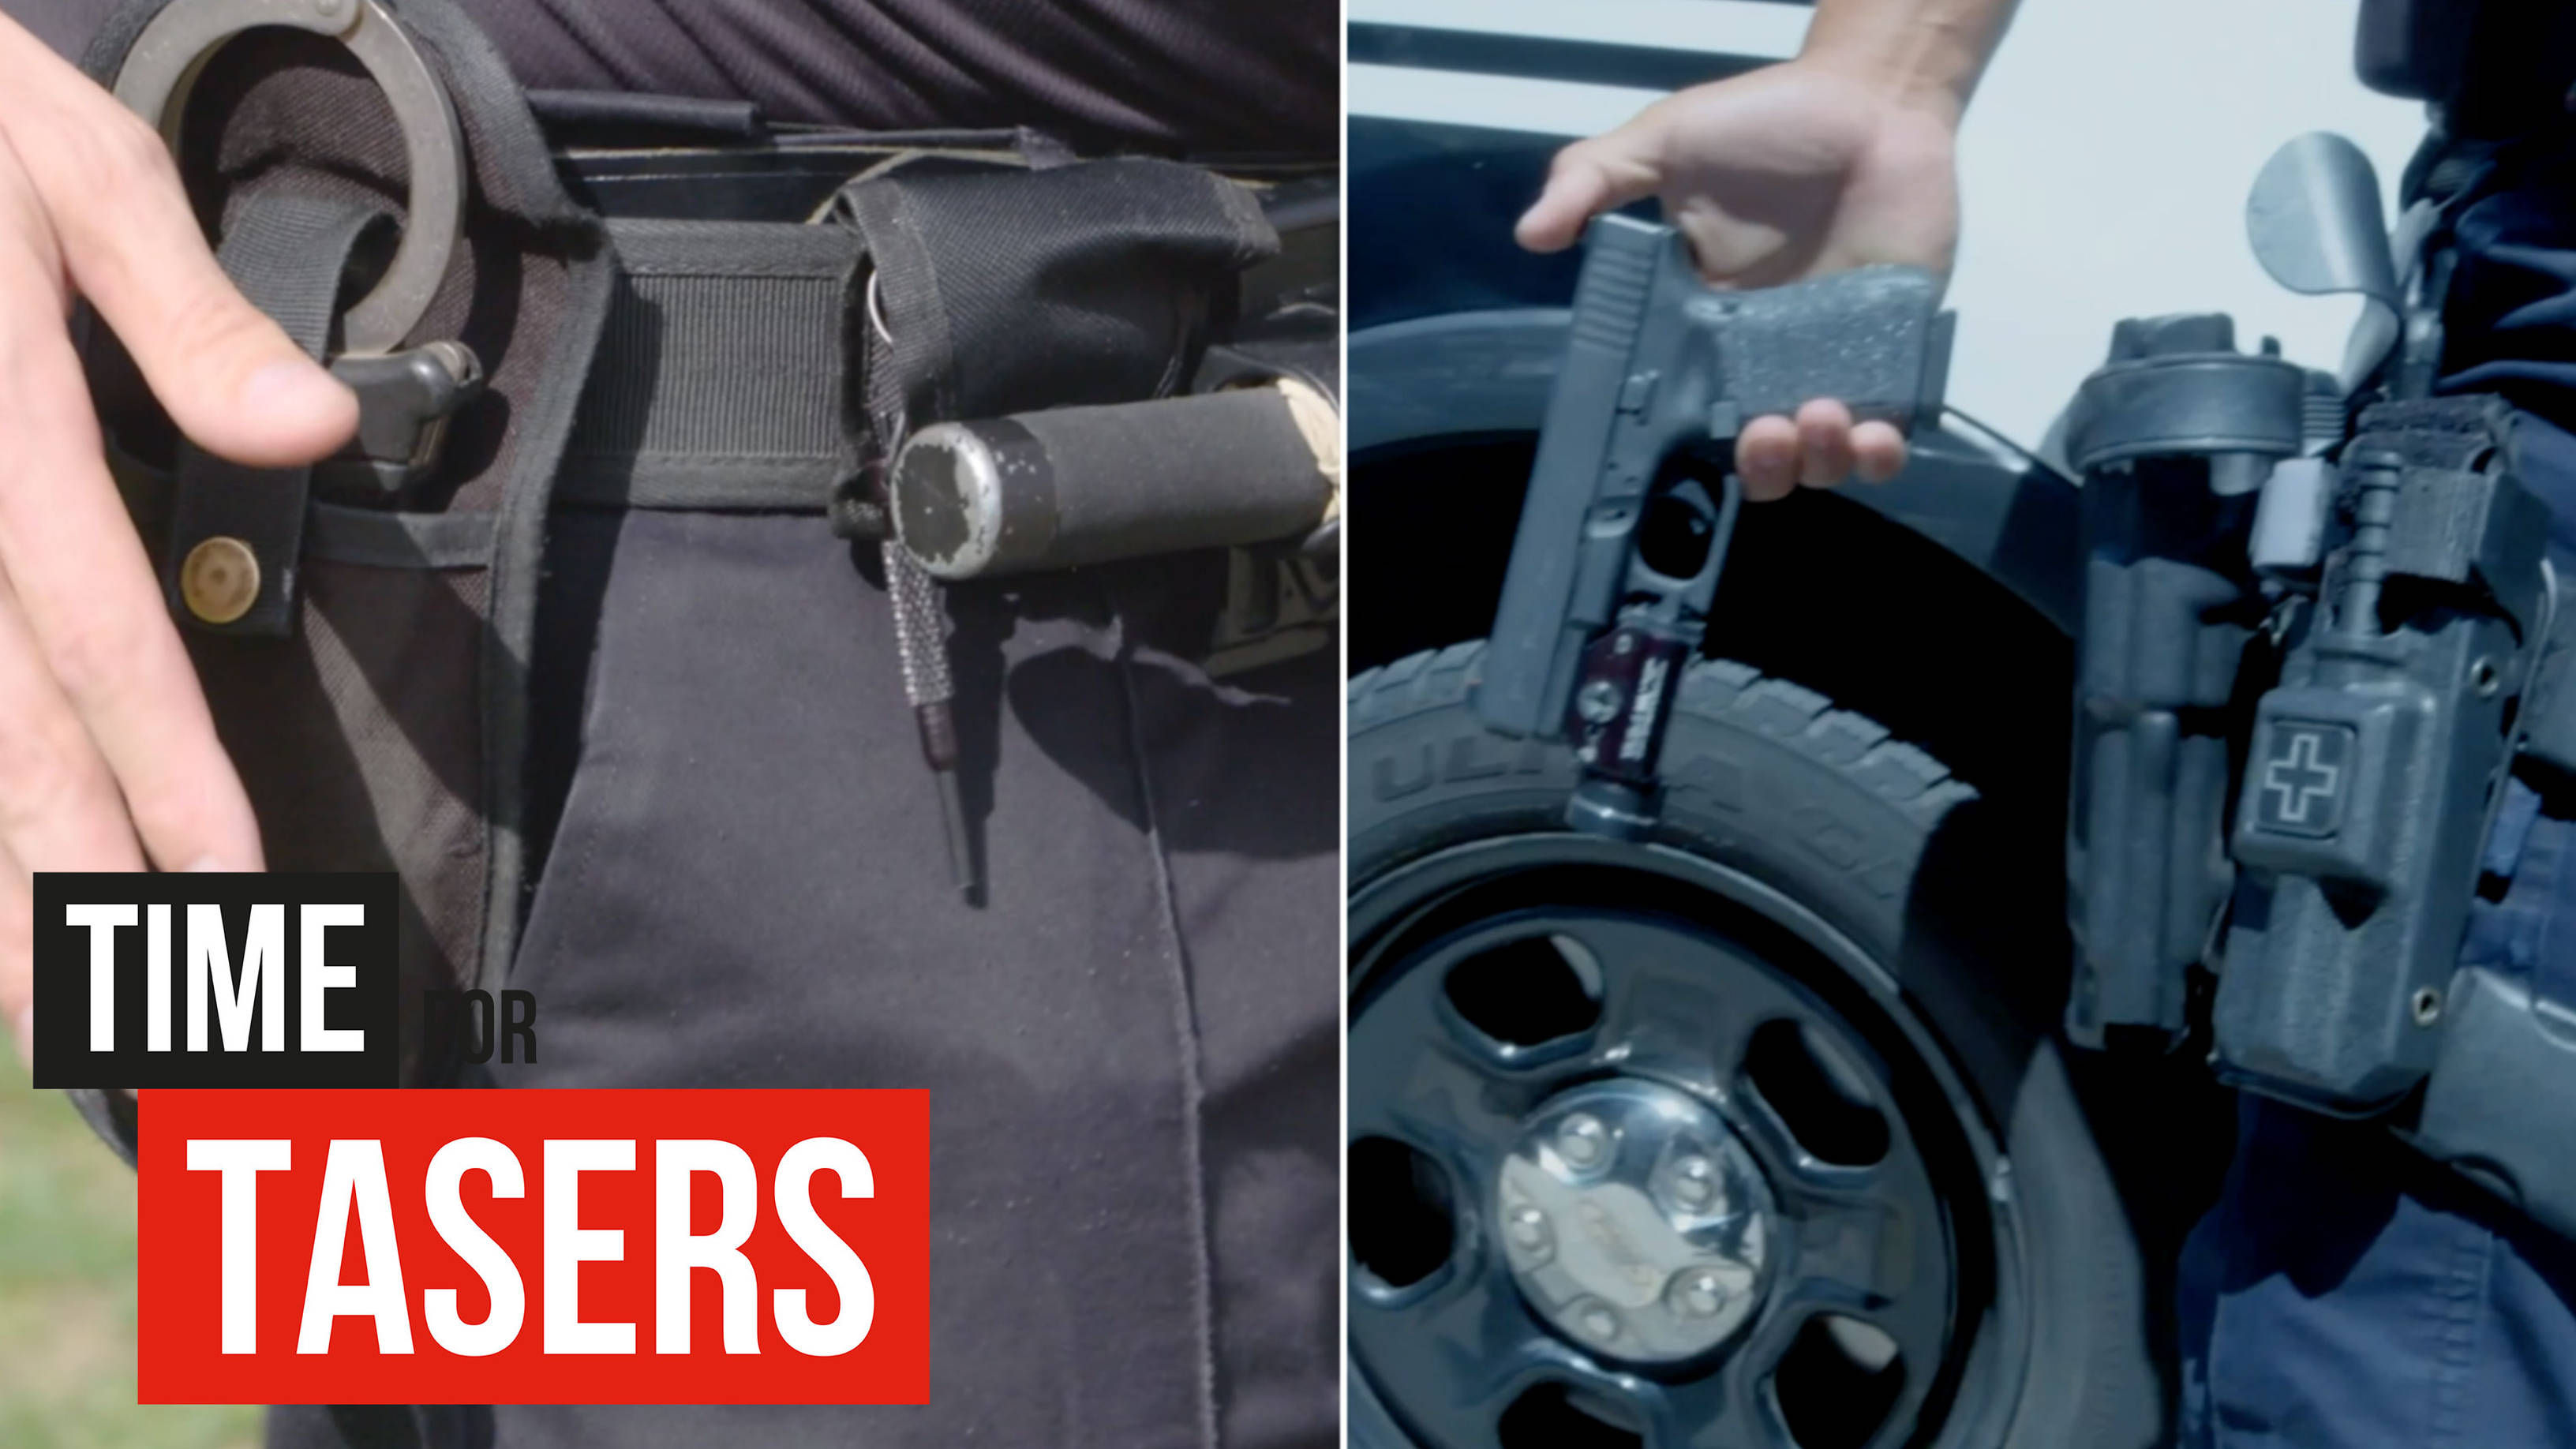 How Does UK Police Equipment Compare With US Cops?